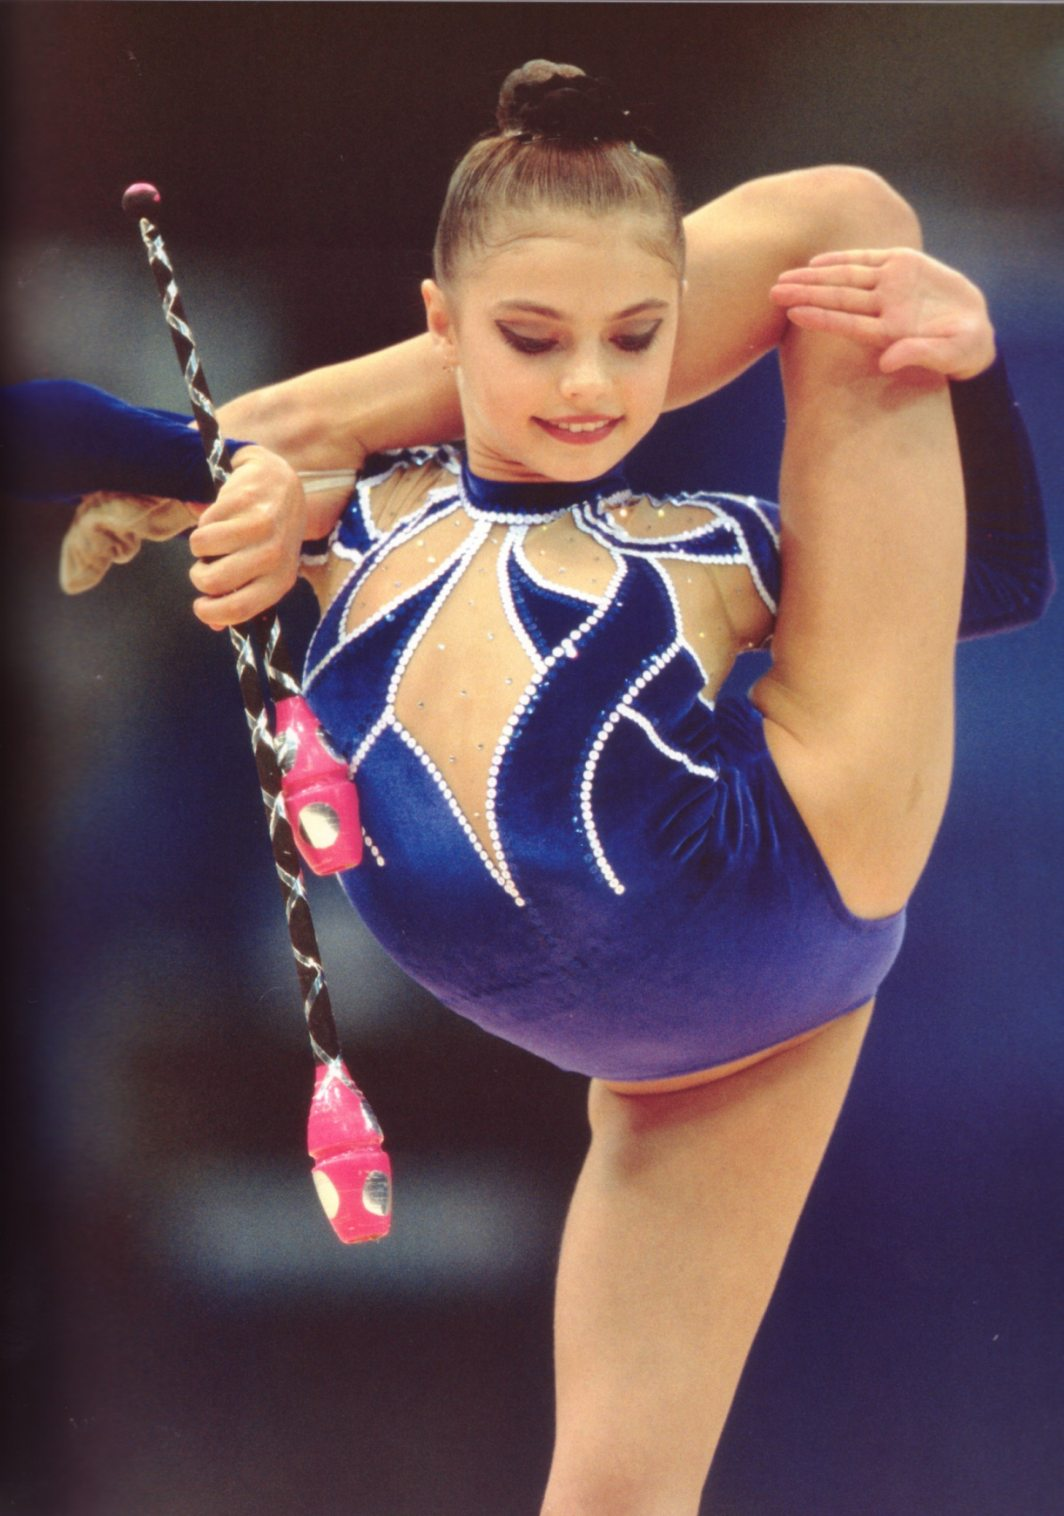 Fundelia: Alina Kabaeva ; The Gymnast Politician